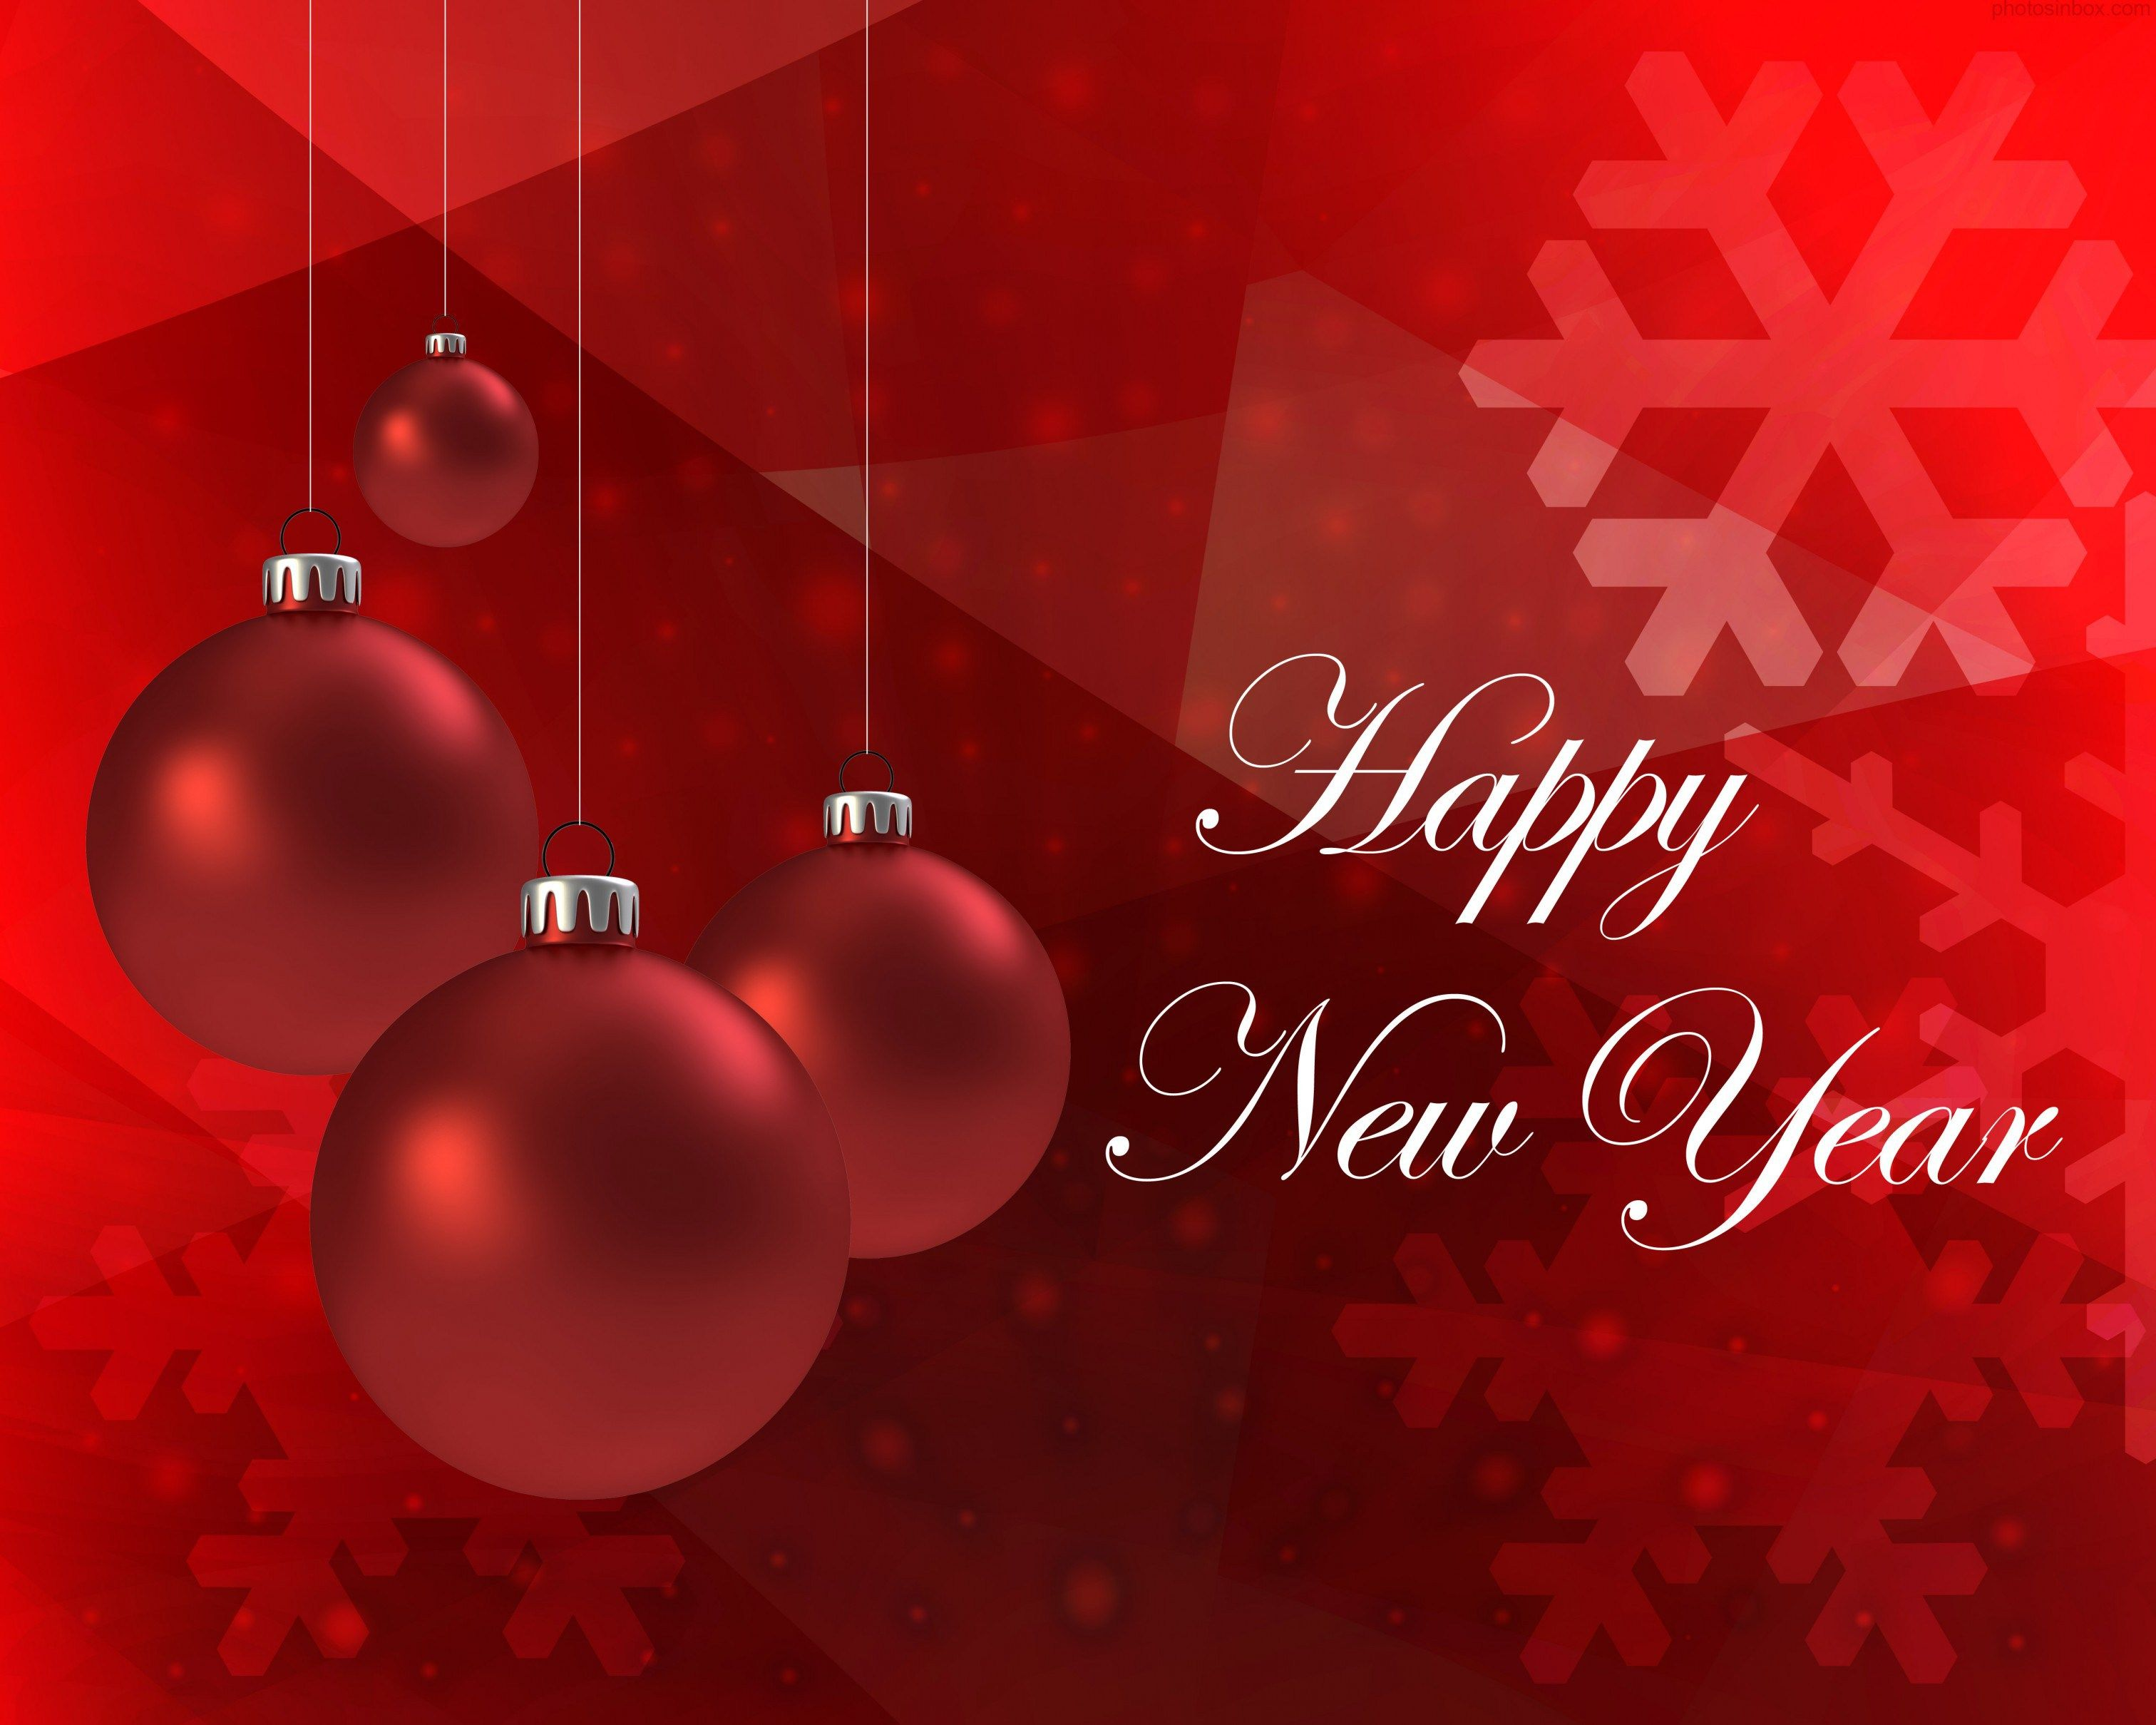 Happy New Year New Year Wishes To One And All Who Have Been A Great